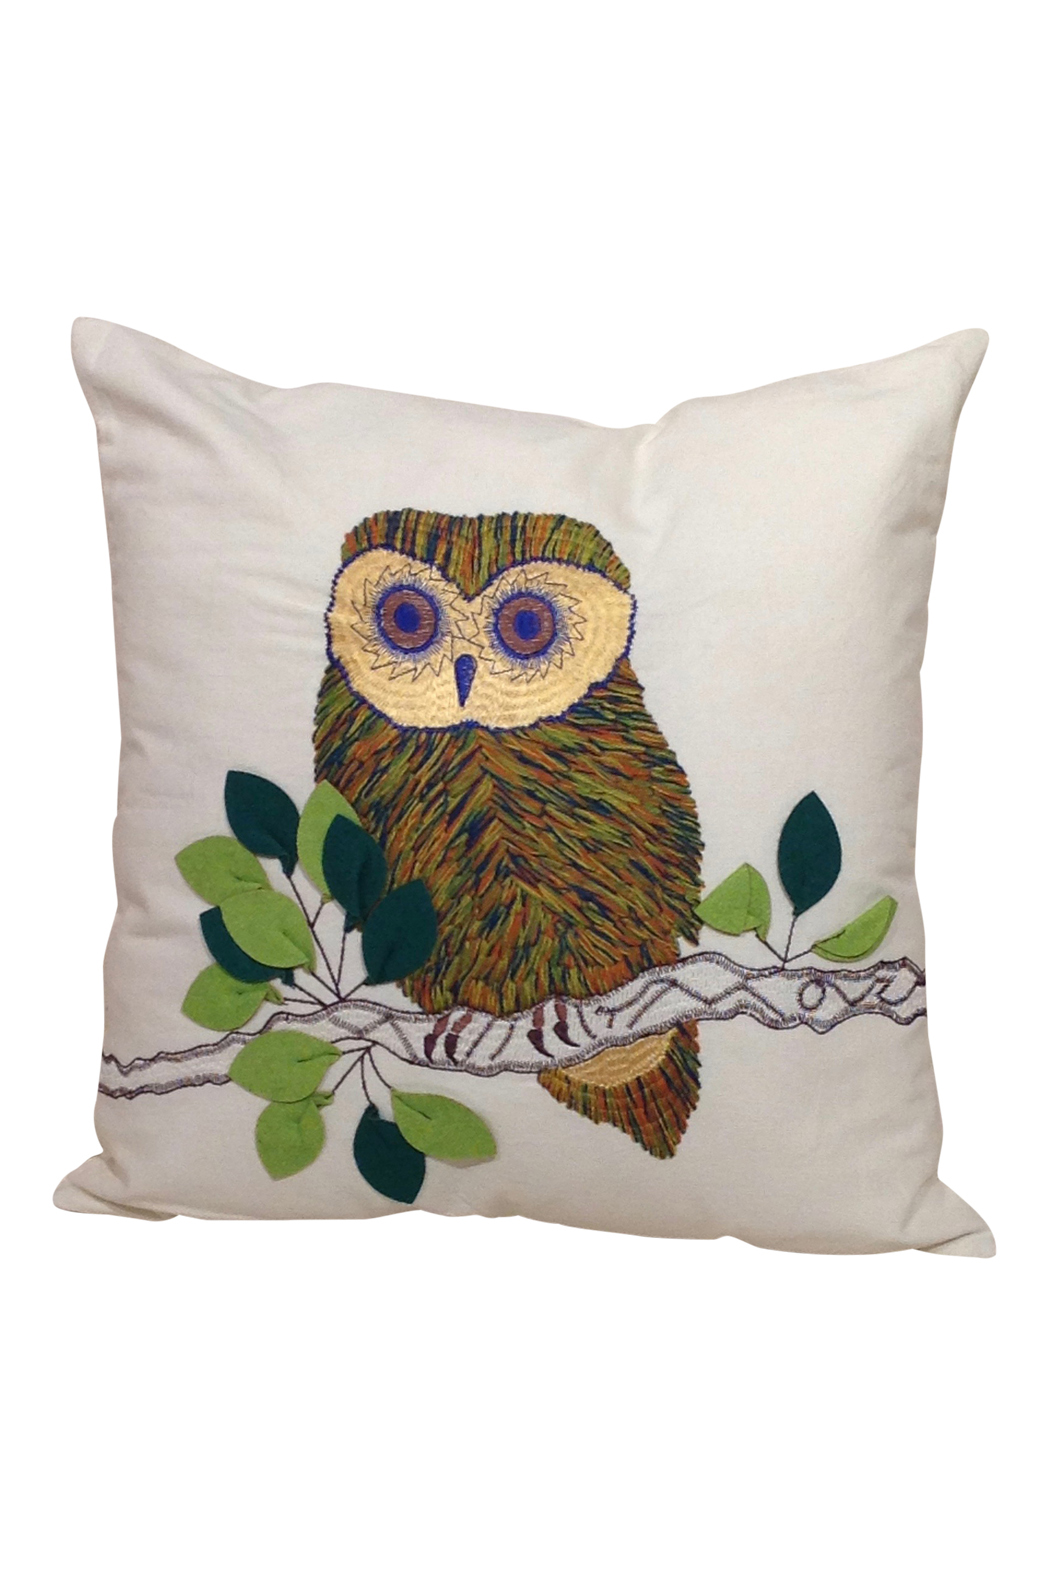 Embroidered owl pillow go home modern decor gifts for Modern home decor gifts